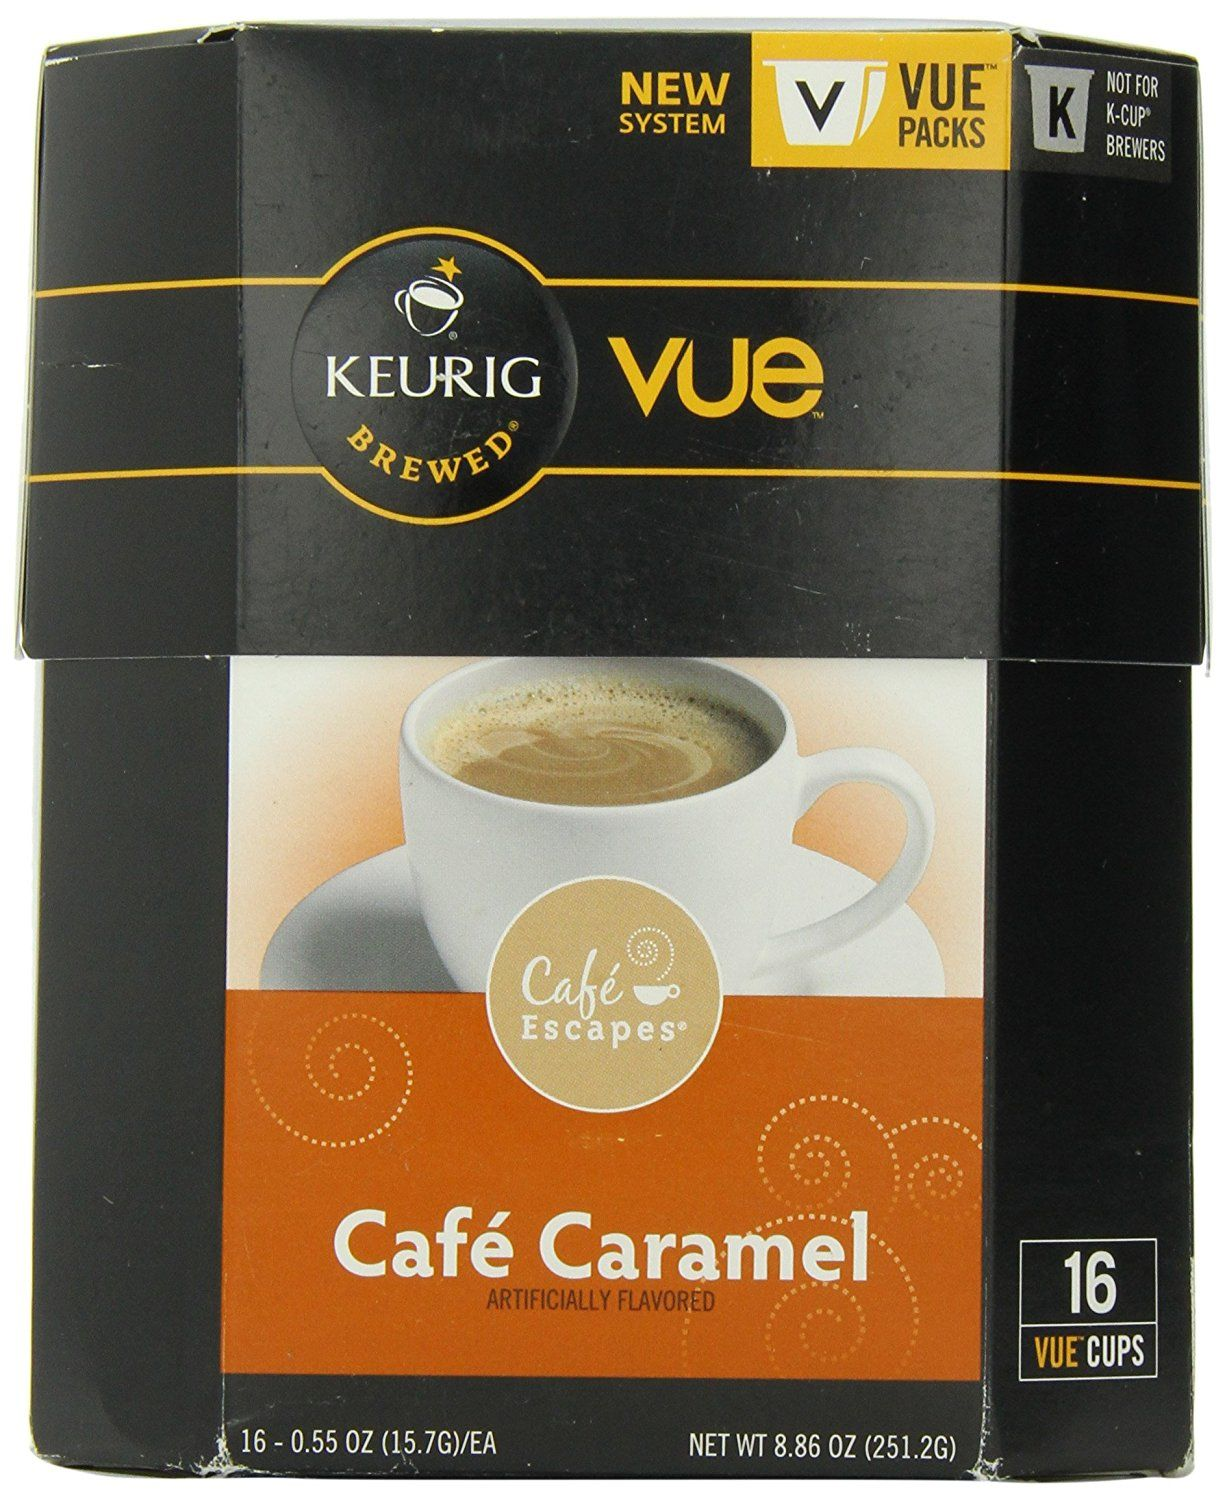 Cafe Escapes Cafe Caramel Vue Pack 16 Count ** A Special